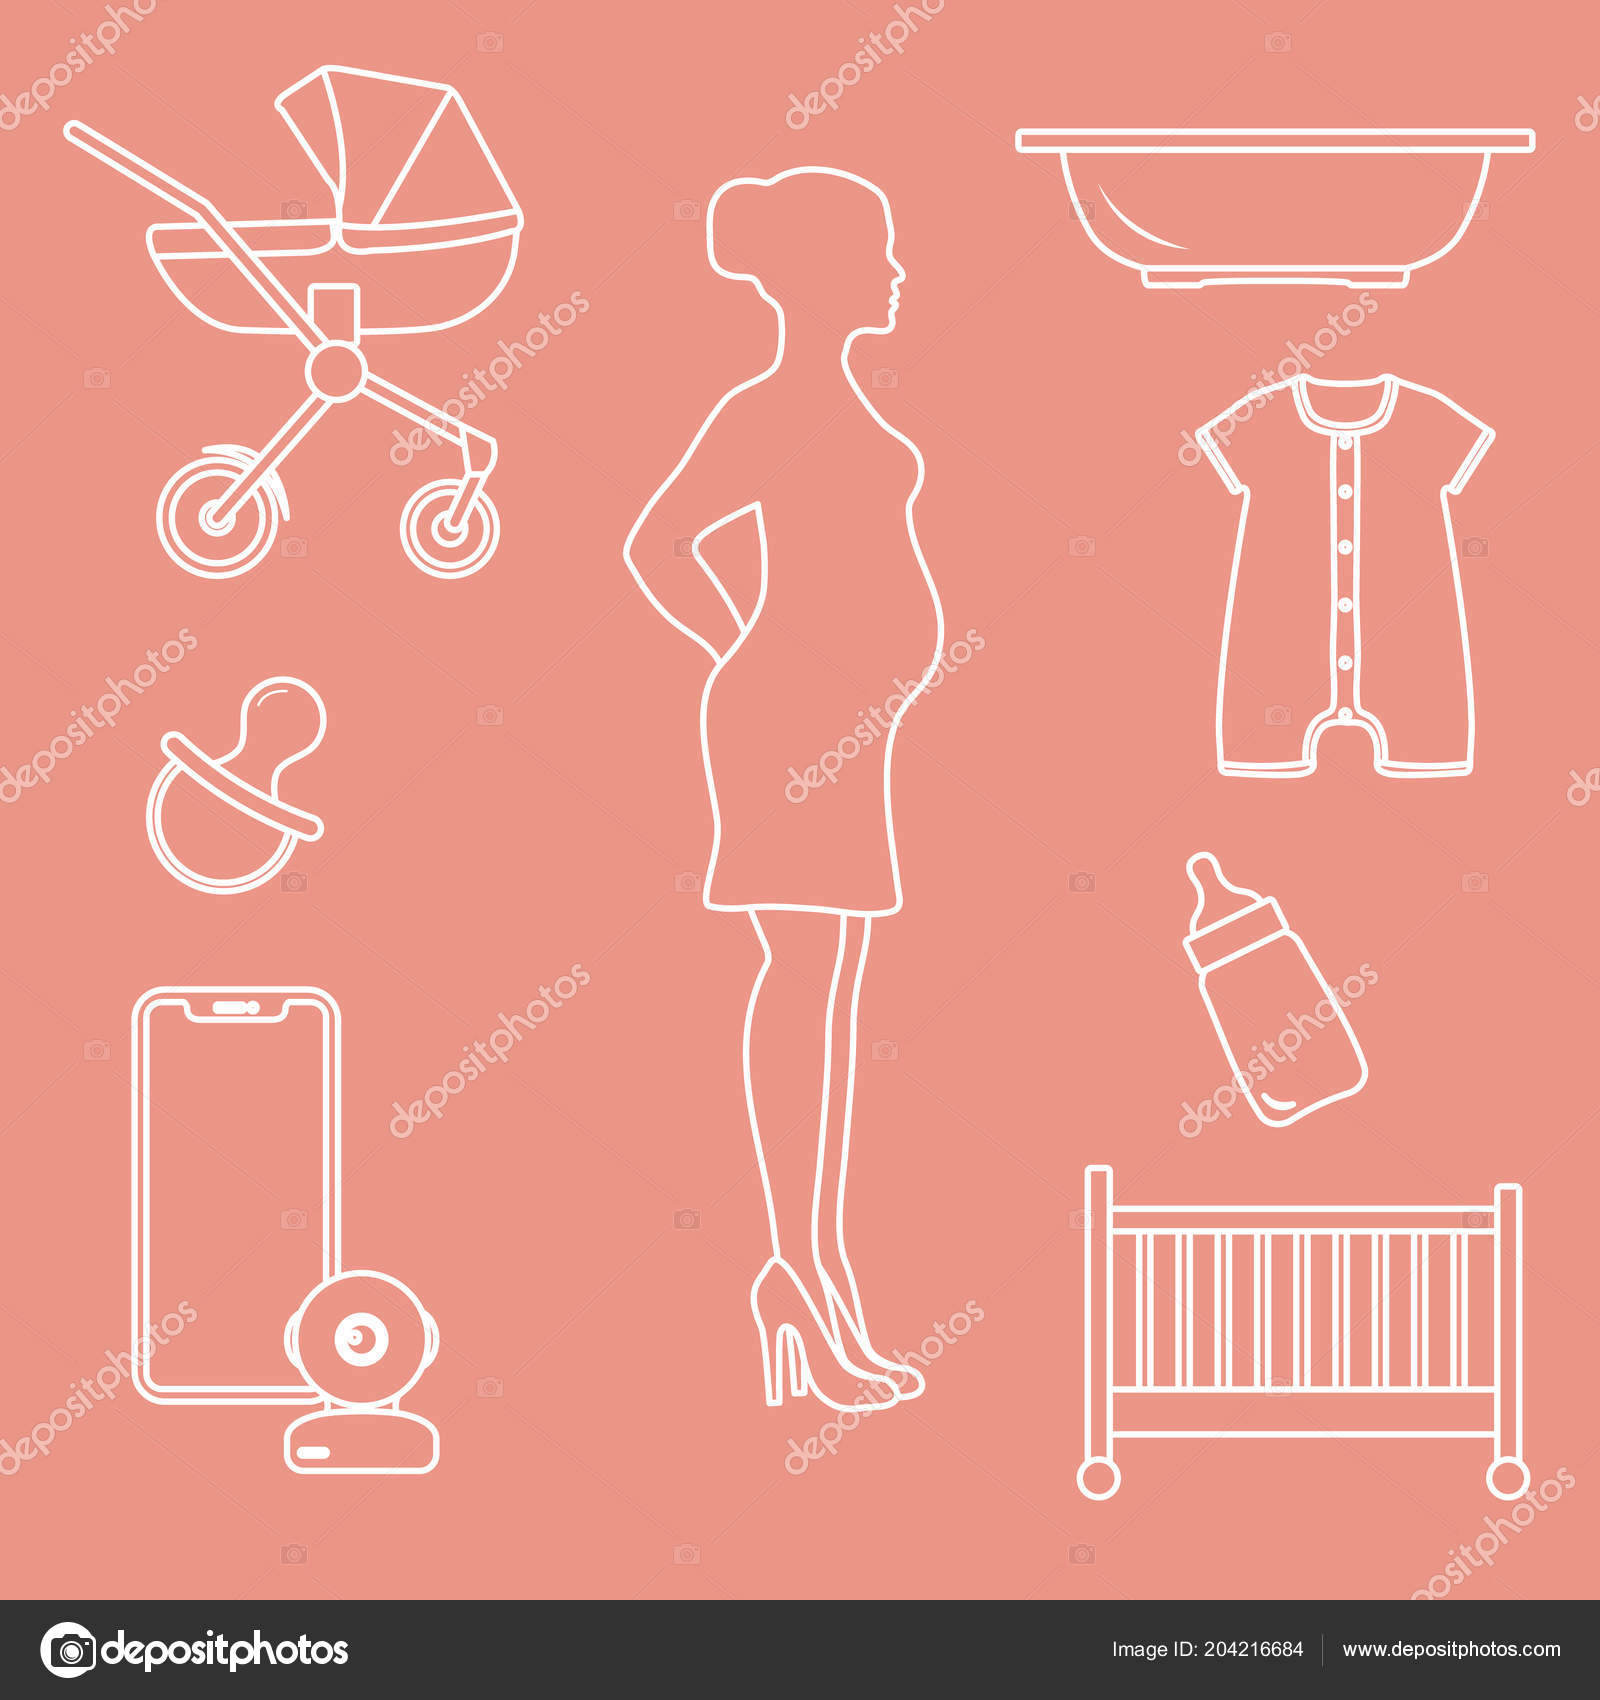 hight resolution of pregnant woman goods babies stroller crib baby monitor bottle pacifier stock vector